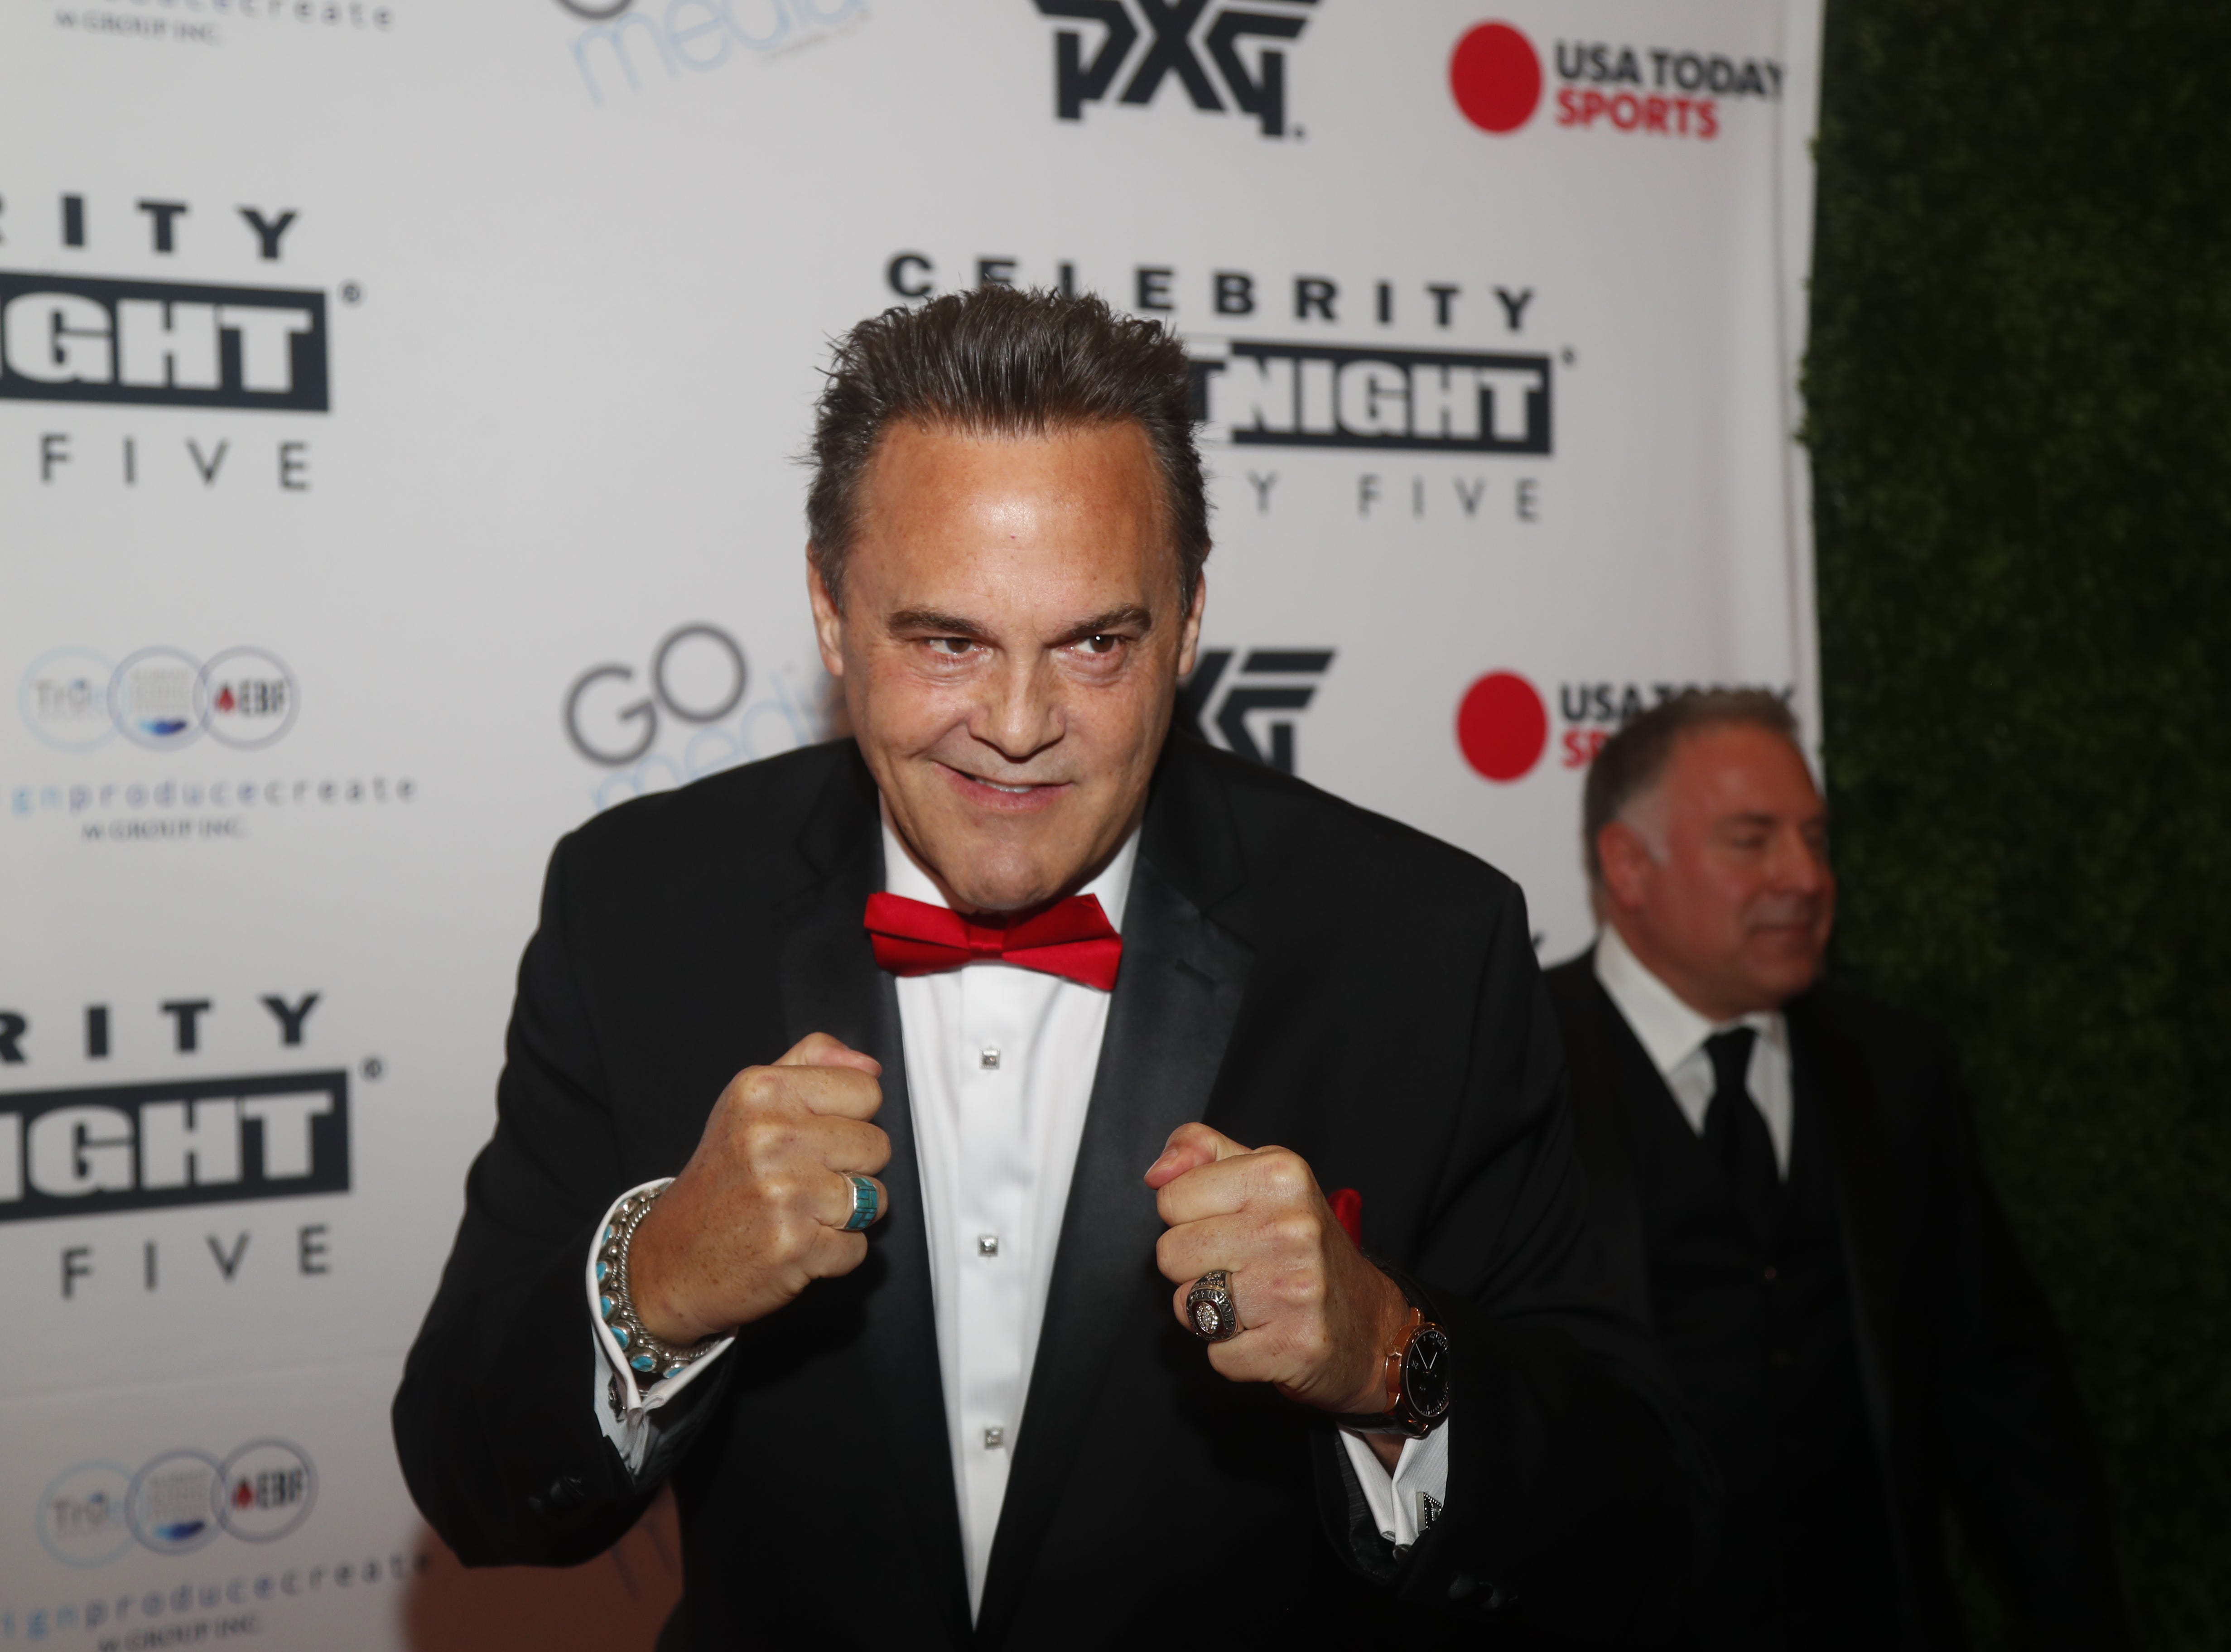 Nick Lowery poses for pictures during the Celebrity Fight Night red carpet in Scottsdale, Ariz., on March 23, 2019.